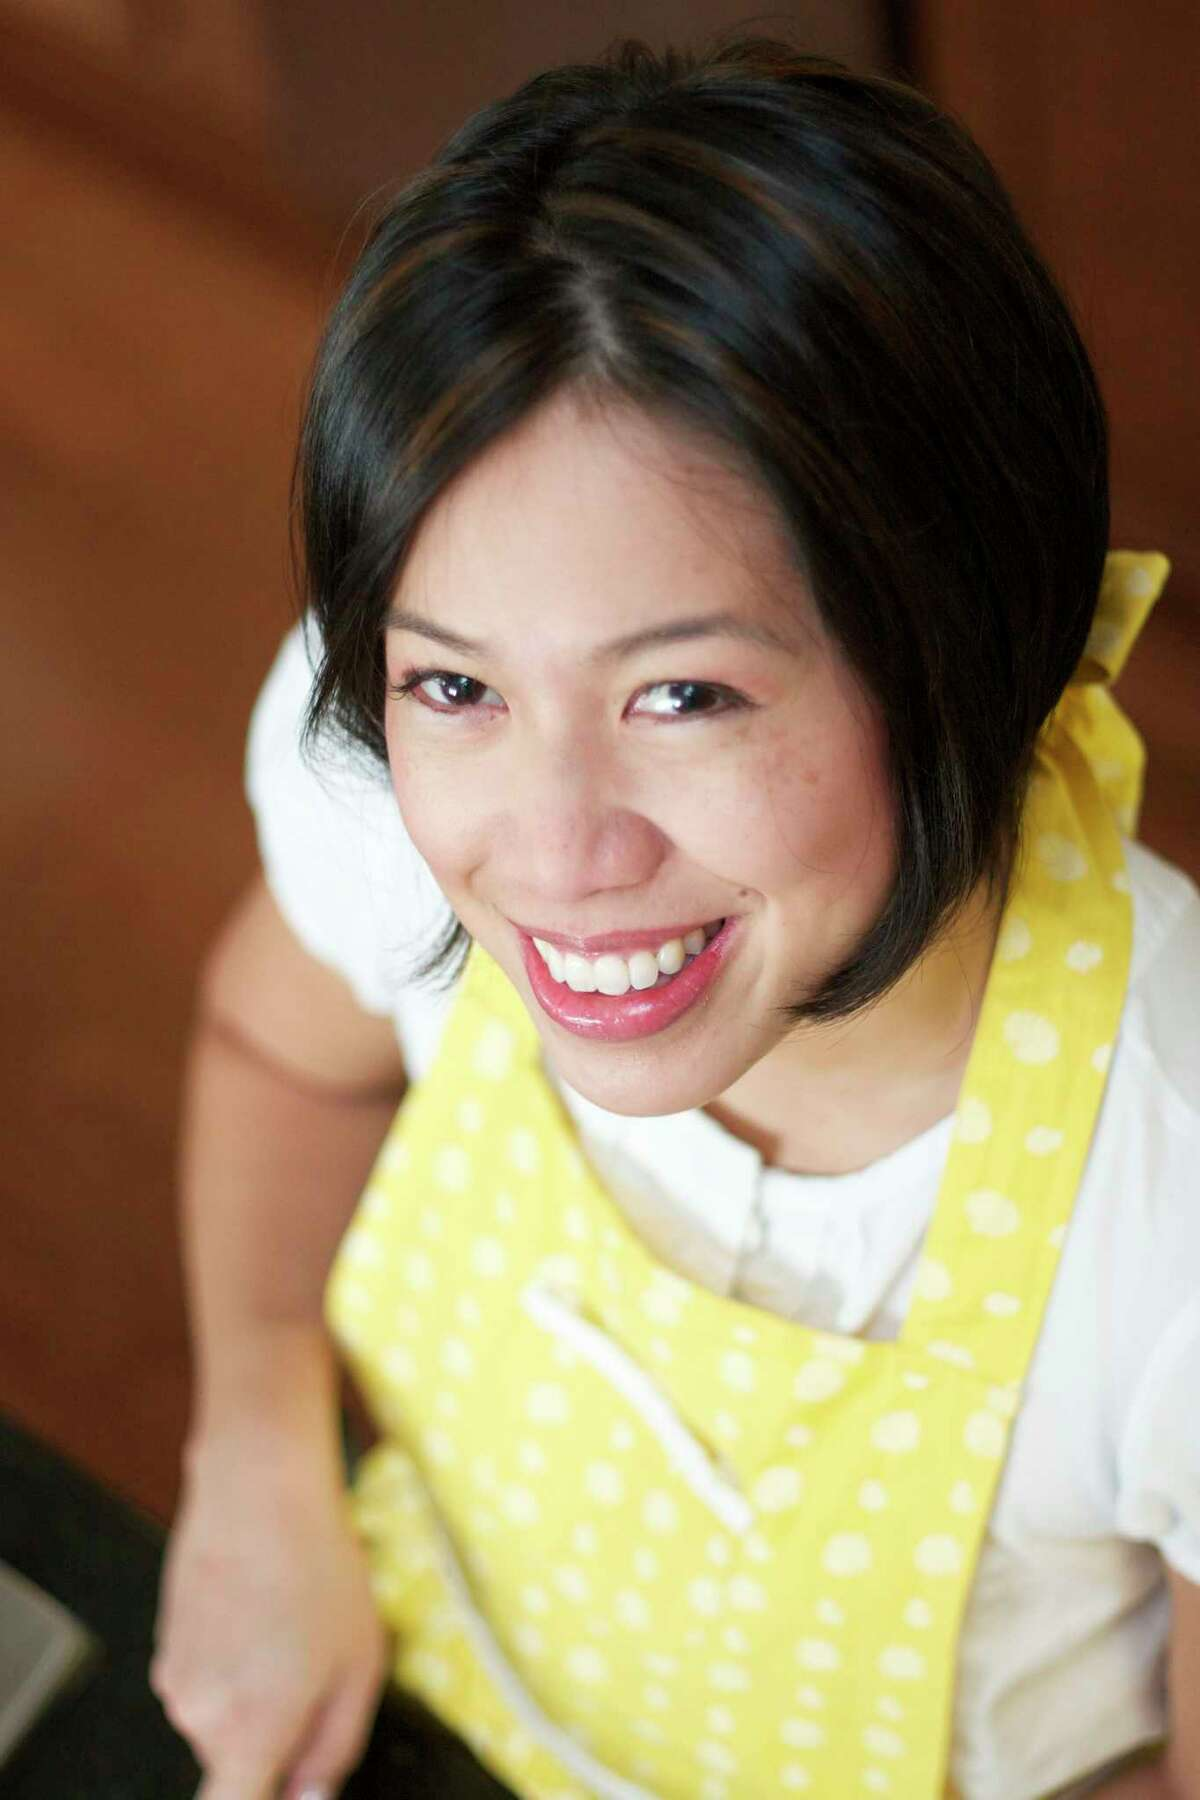 Houstonian Christine Ha, winner of Season 3 of